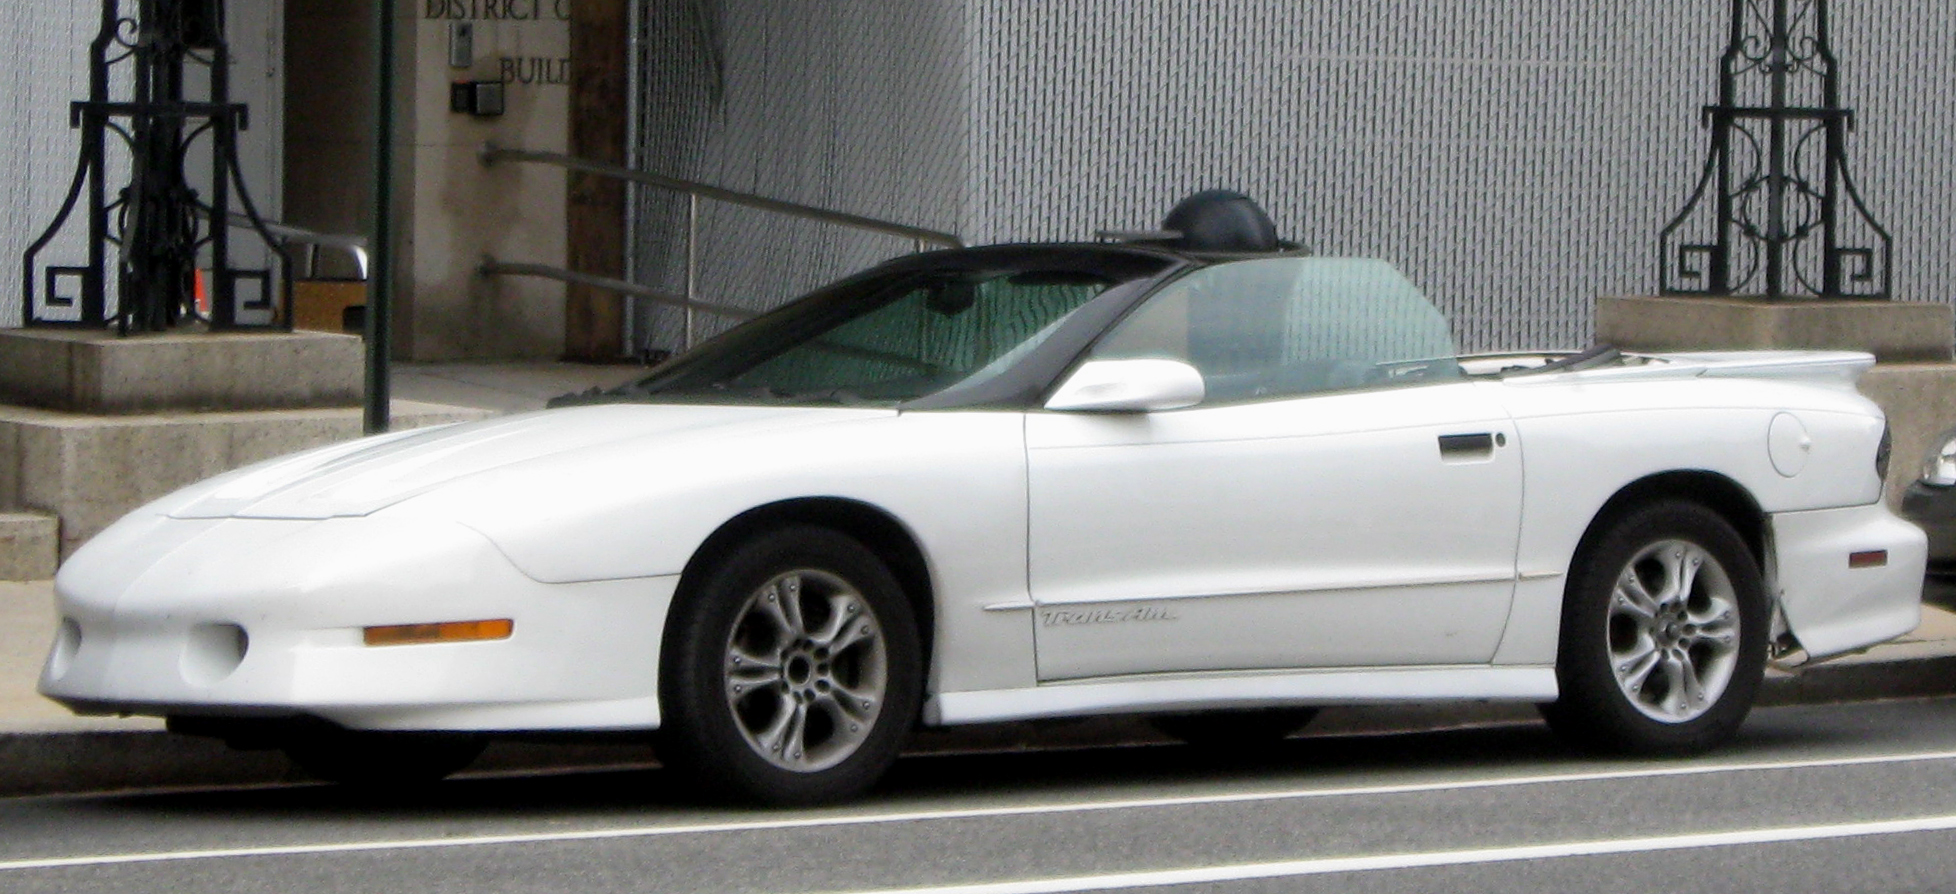 Description Pontiac Trans Am convertible.jpg